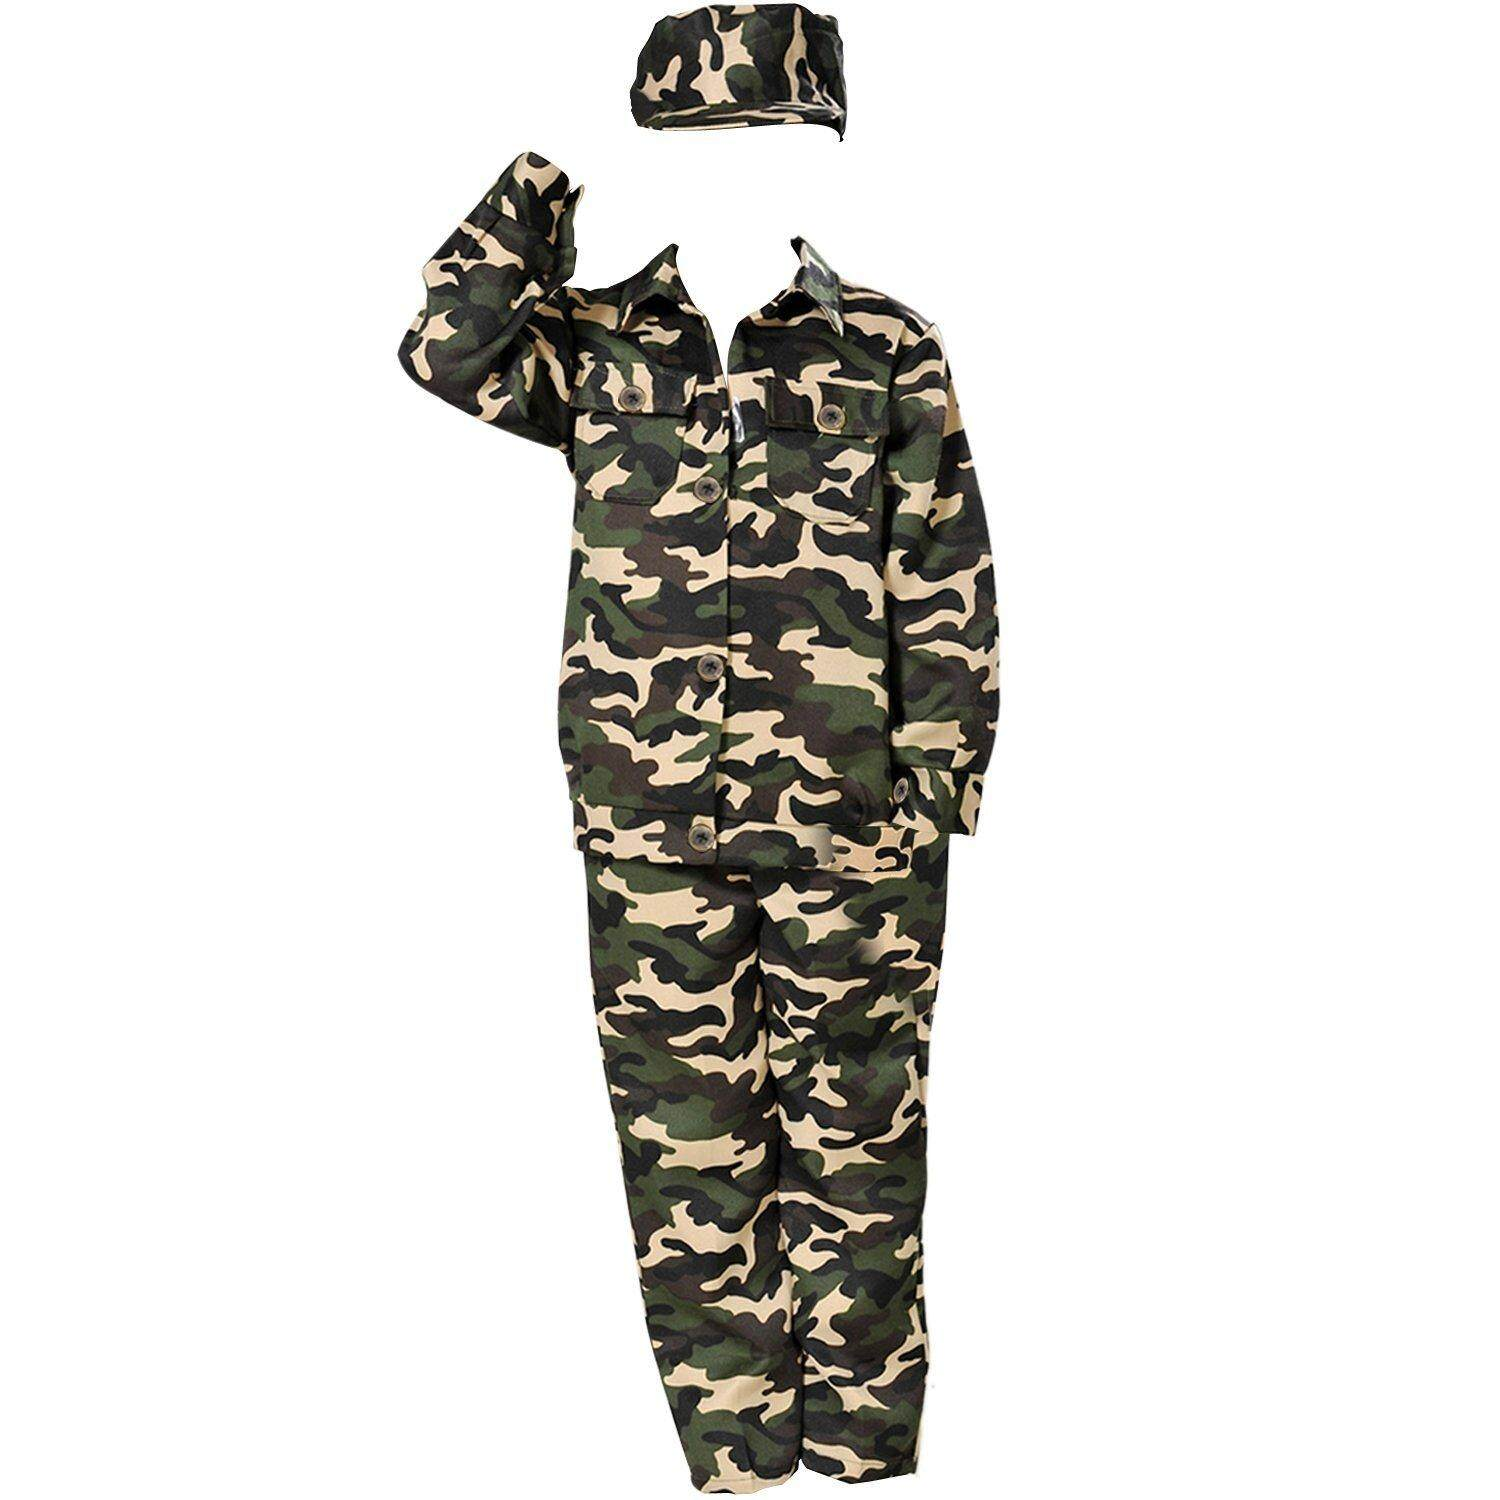 Children Kids Army Soldier Fancy Dress Costume Military Soldier Uniform Party Camo Outfit (4-6 years)